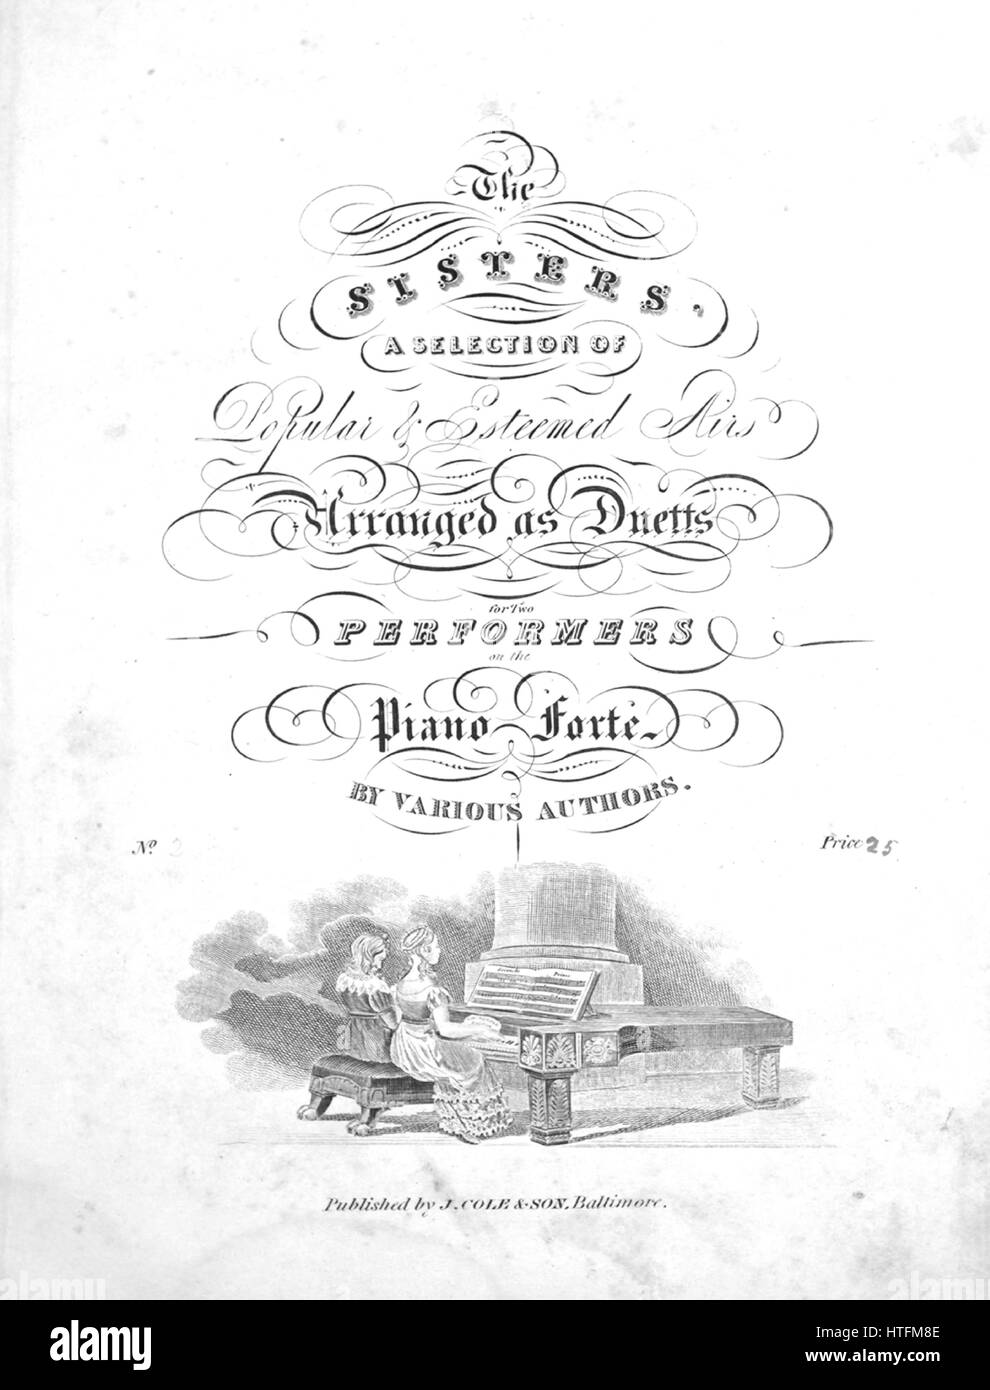 Sheet music cover image of the song 'The Sisters A Selection of Popular and Esteemed Airs Arranged as Duetts - Stock Image